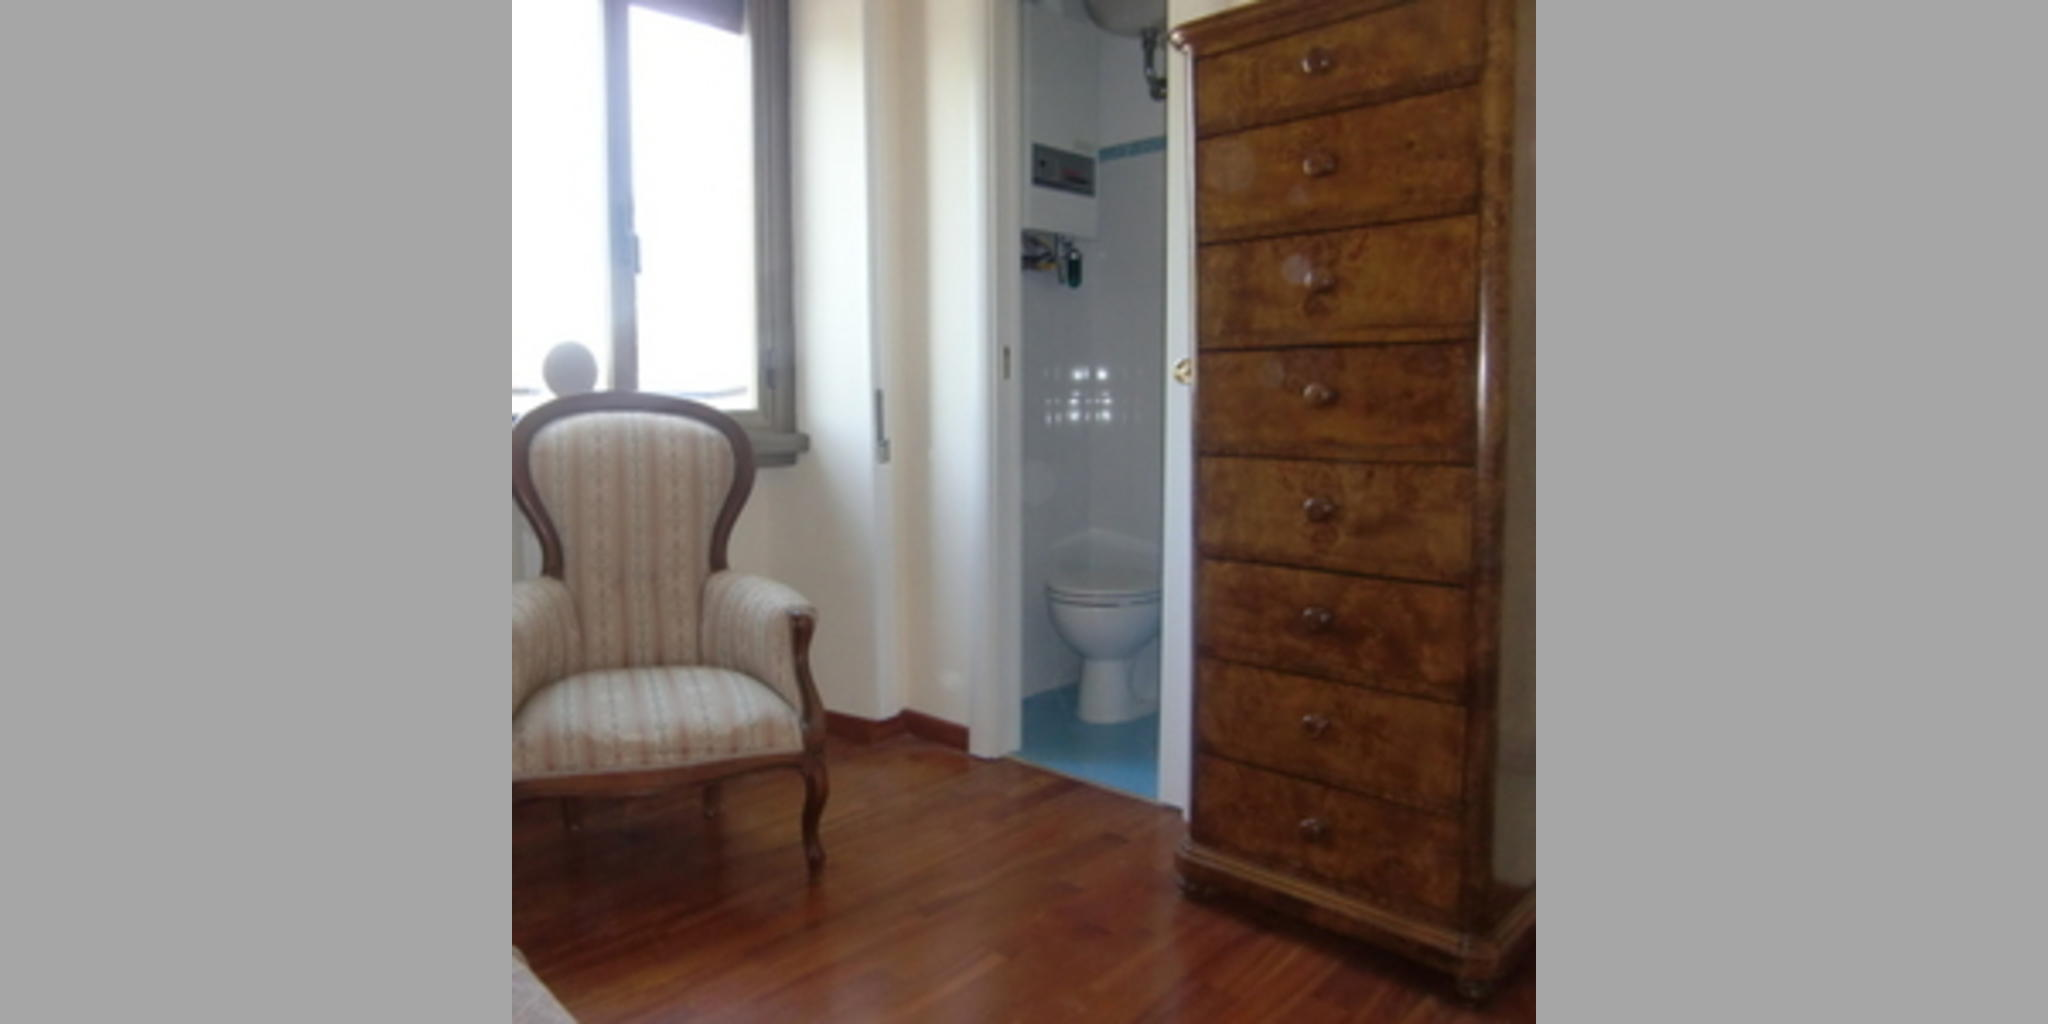 Bed & Breakfast Roma - Roma_Garbatella